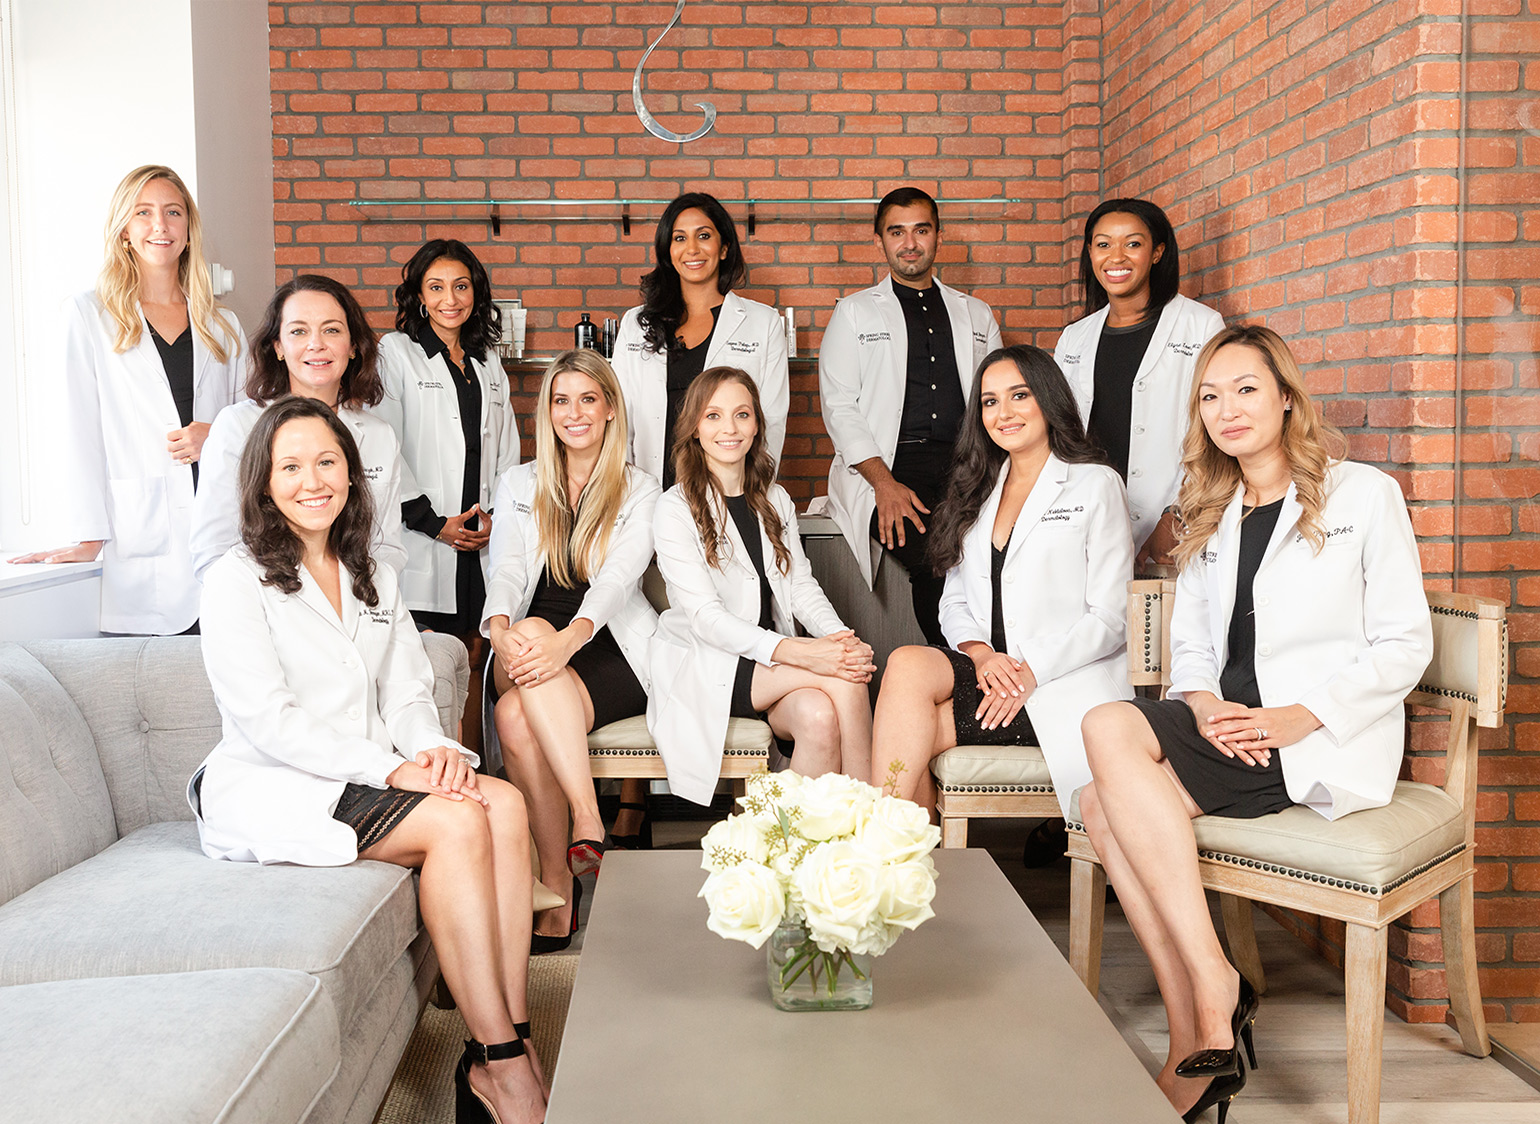 Group photo of Board Certified Dermatologists at Spring Street Dermatology, New York City, NY.